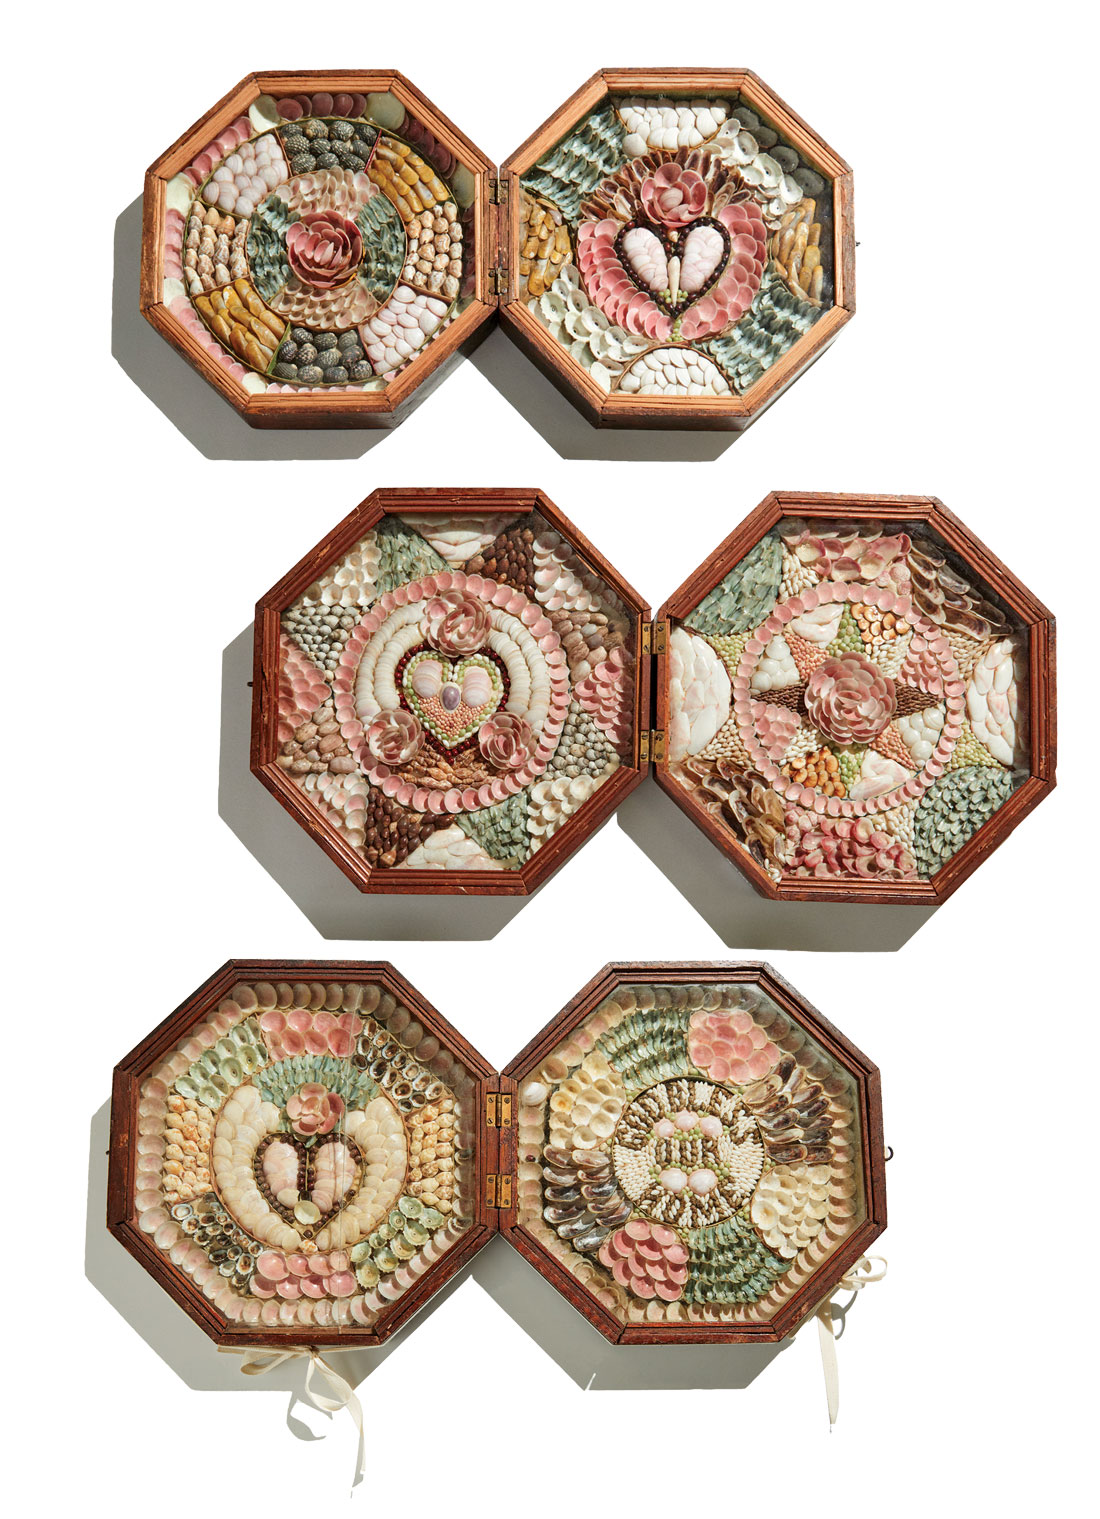 sailors' valentines from Maine Maritime Museum's collection